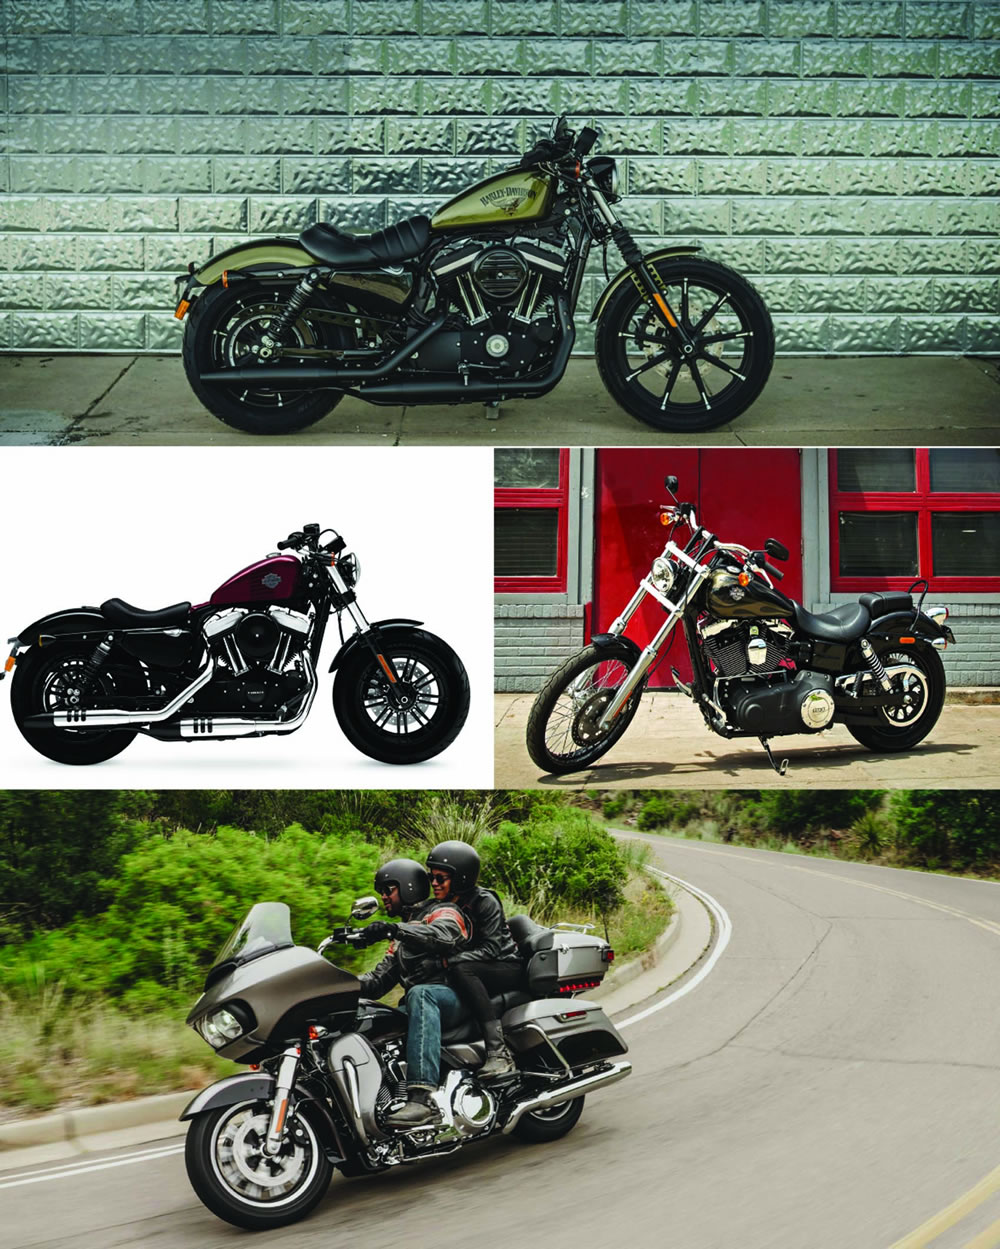 New for Harley-Davidson in 2016_Pix for Text_2